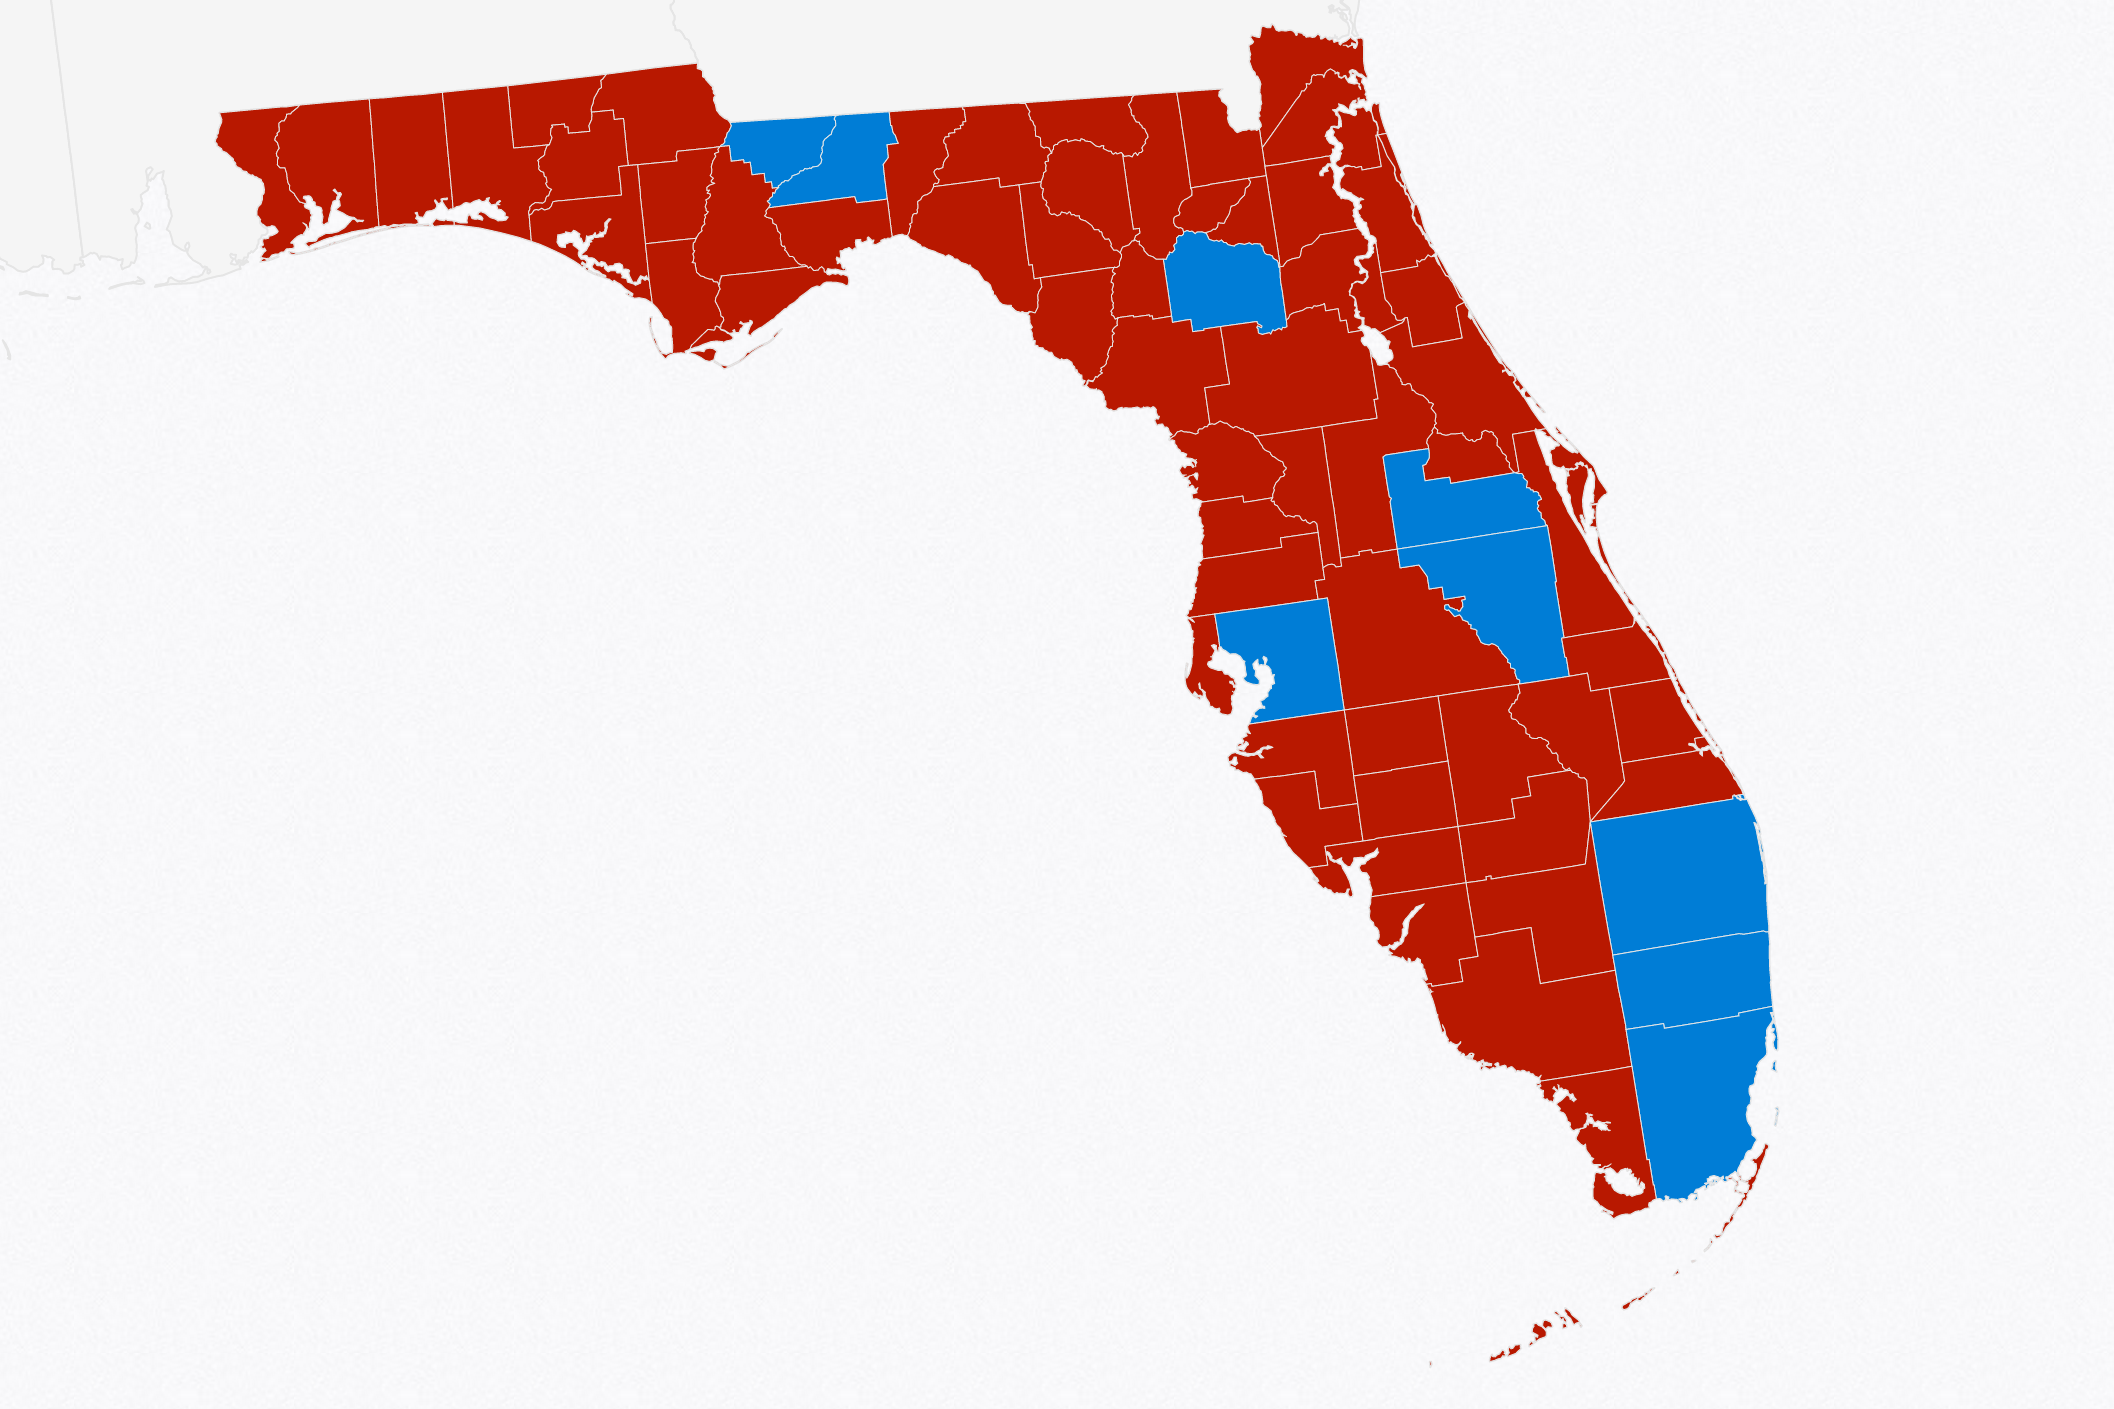 2016 Florida elections by county